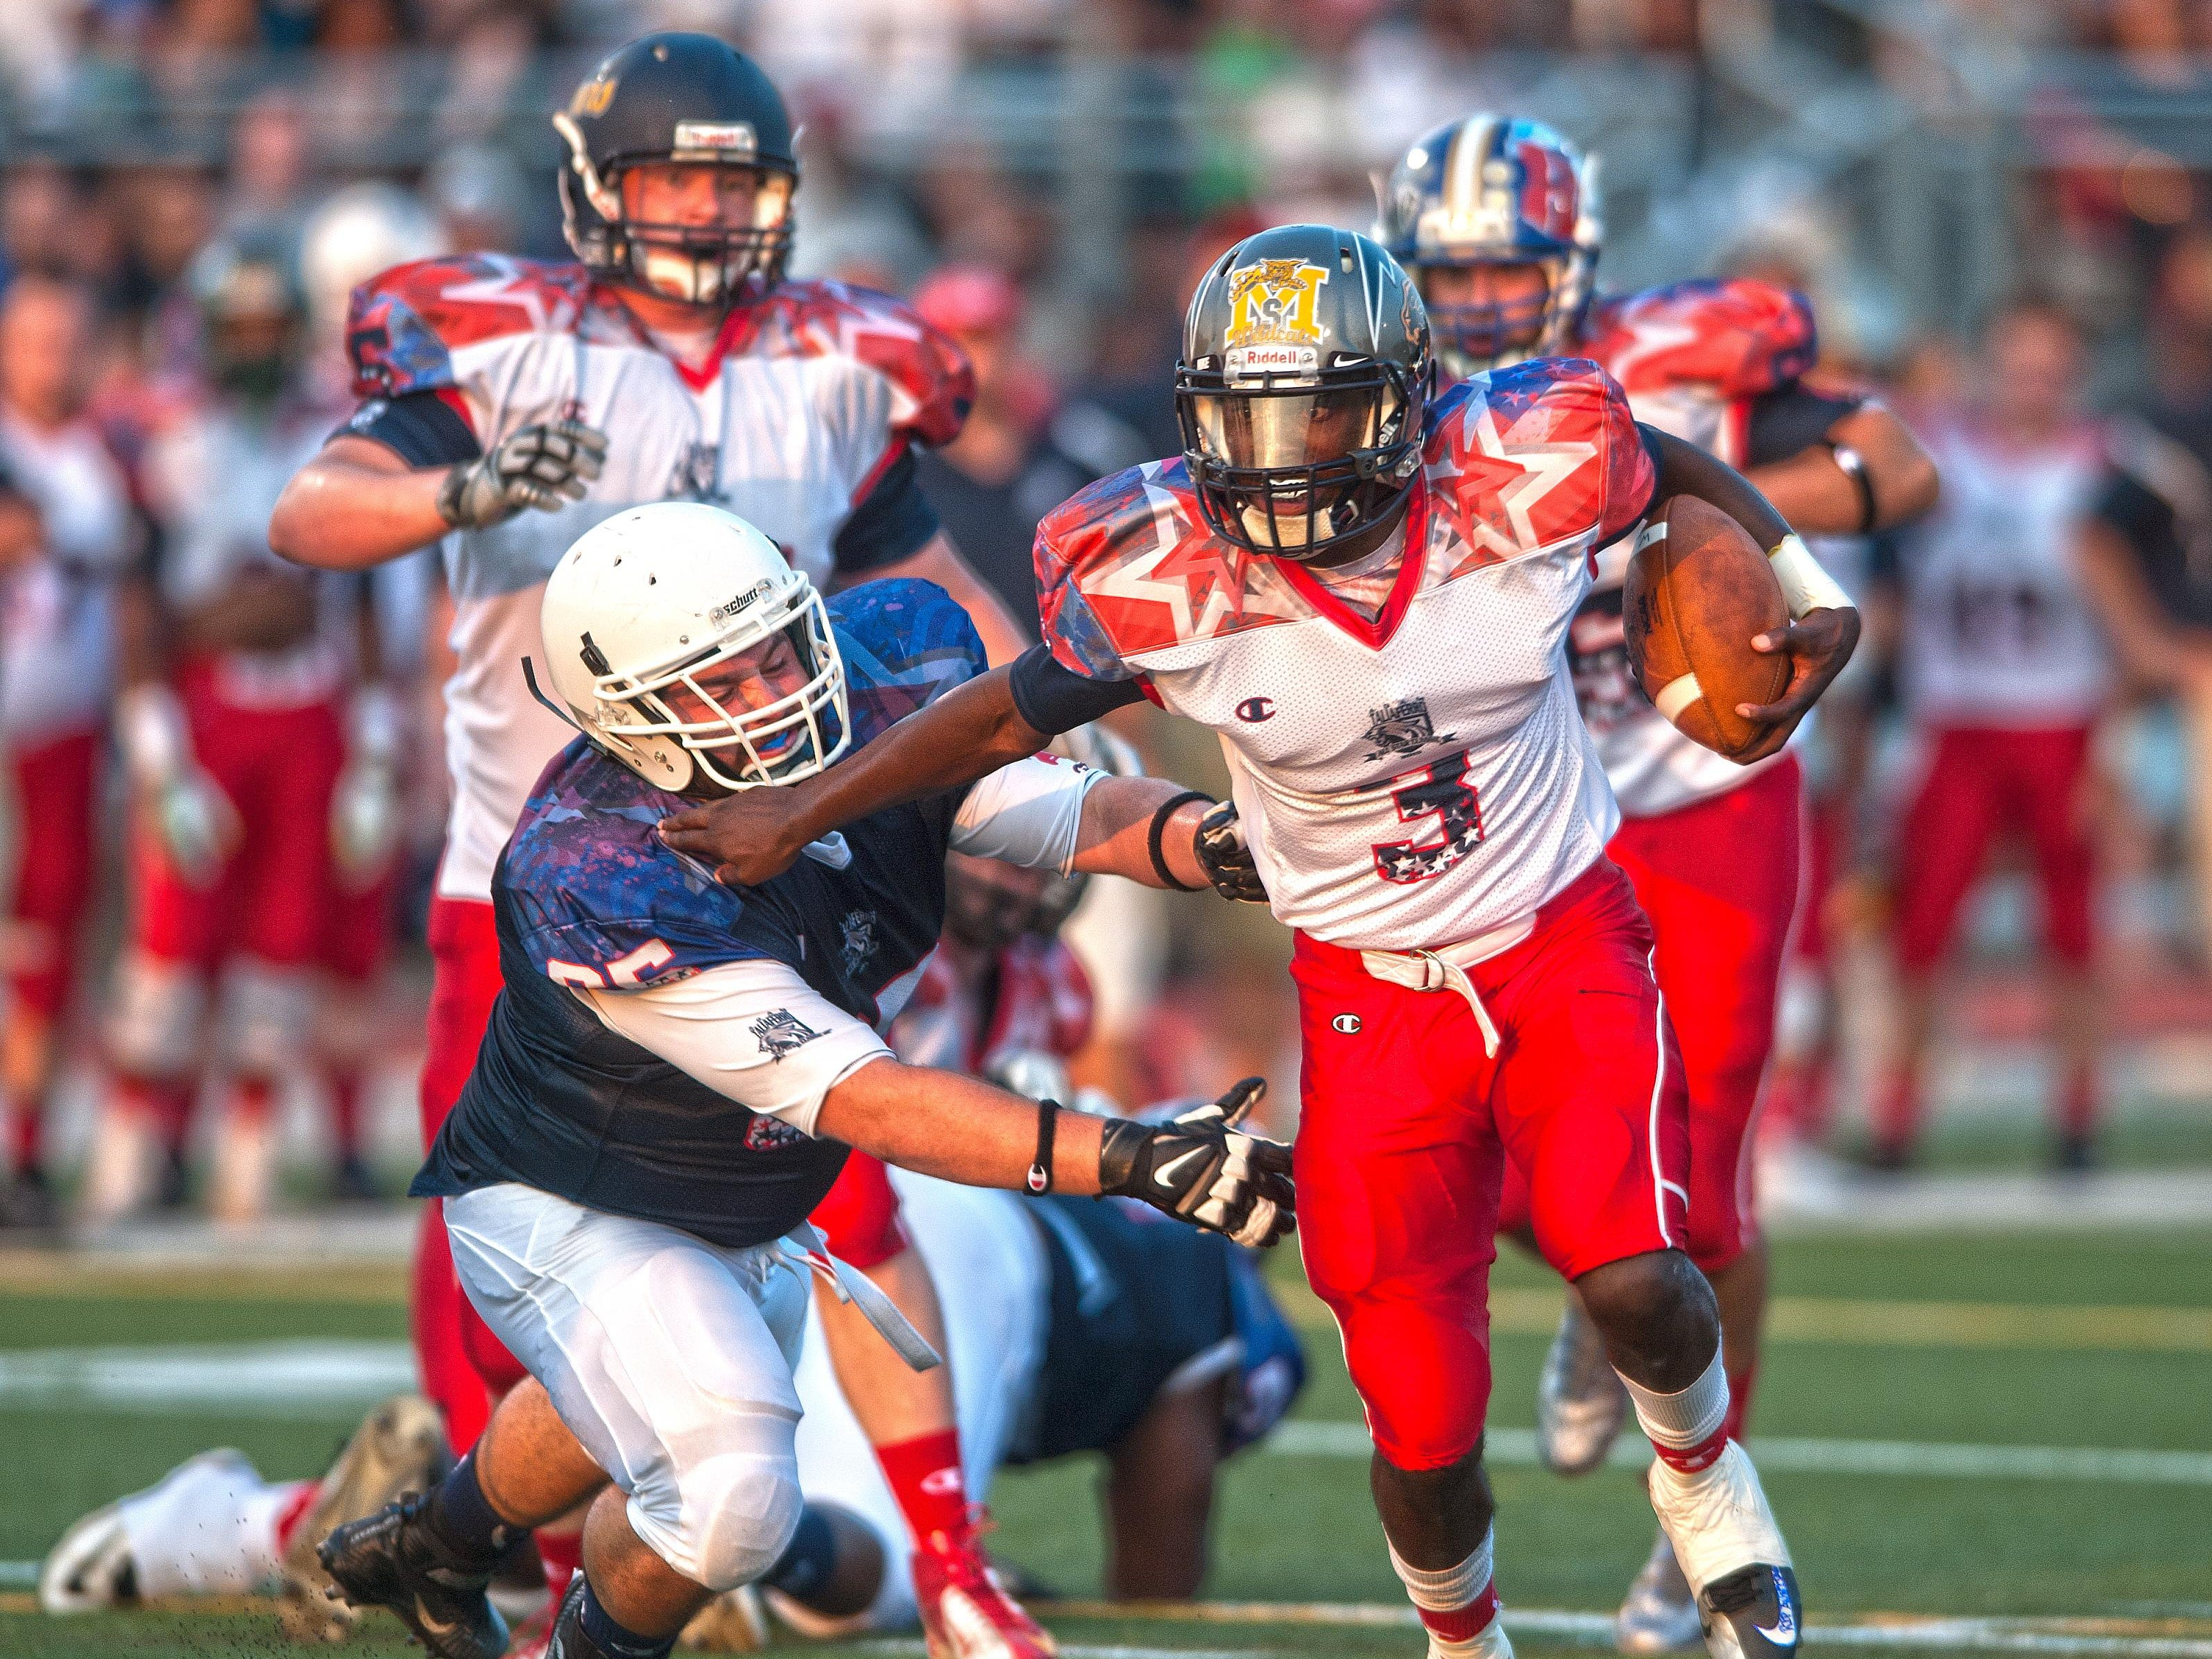 White Squad quarterback Khalil Trotman breaks away from Blue Squad Joe Greco during the second quarter of the South Jersey Coaches-Adam Taliaferro All-Star Football Classic.